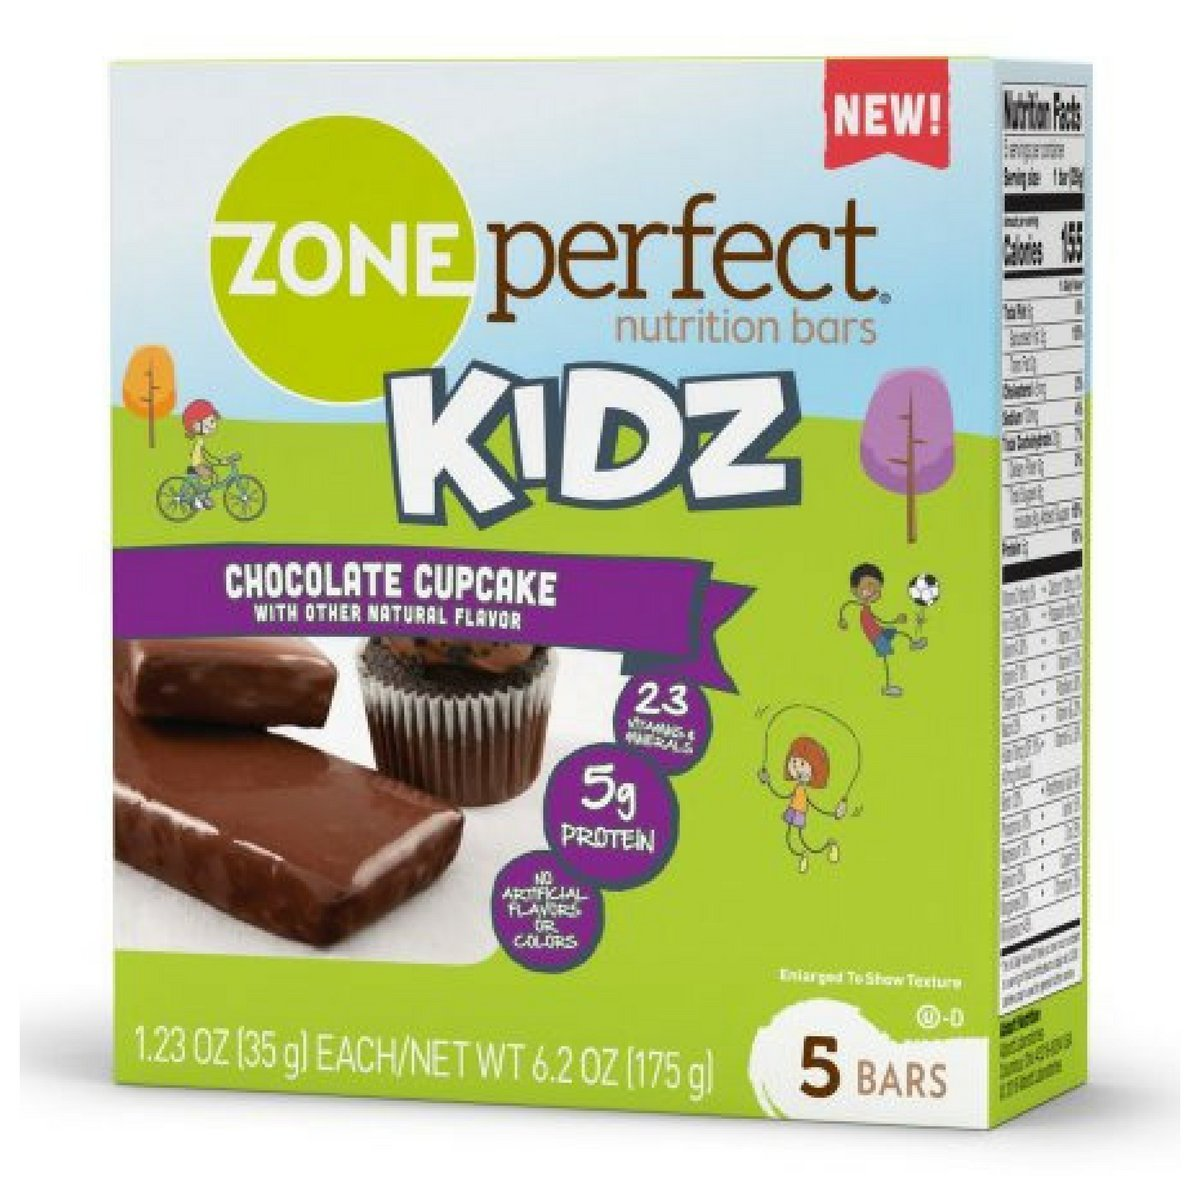 Zone Perfect Kids Chocolate Cupcake Nutrition Bars 1.23ozx 5 bars(total 6.15oz) by Zone Perfect